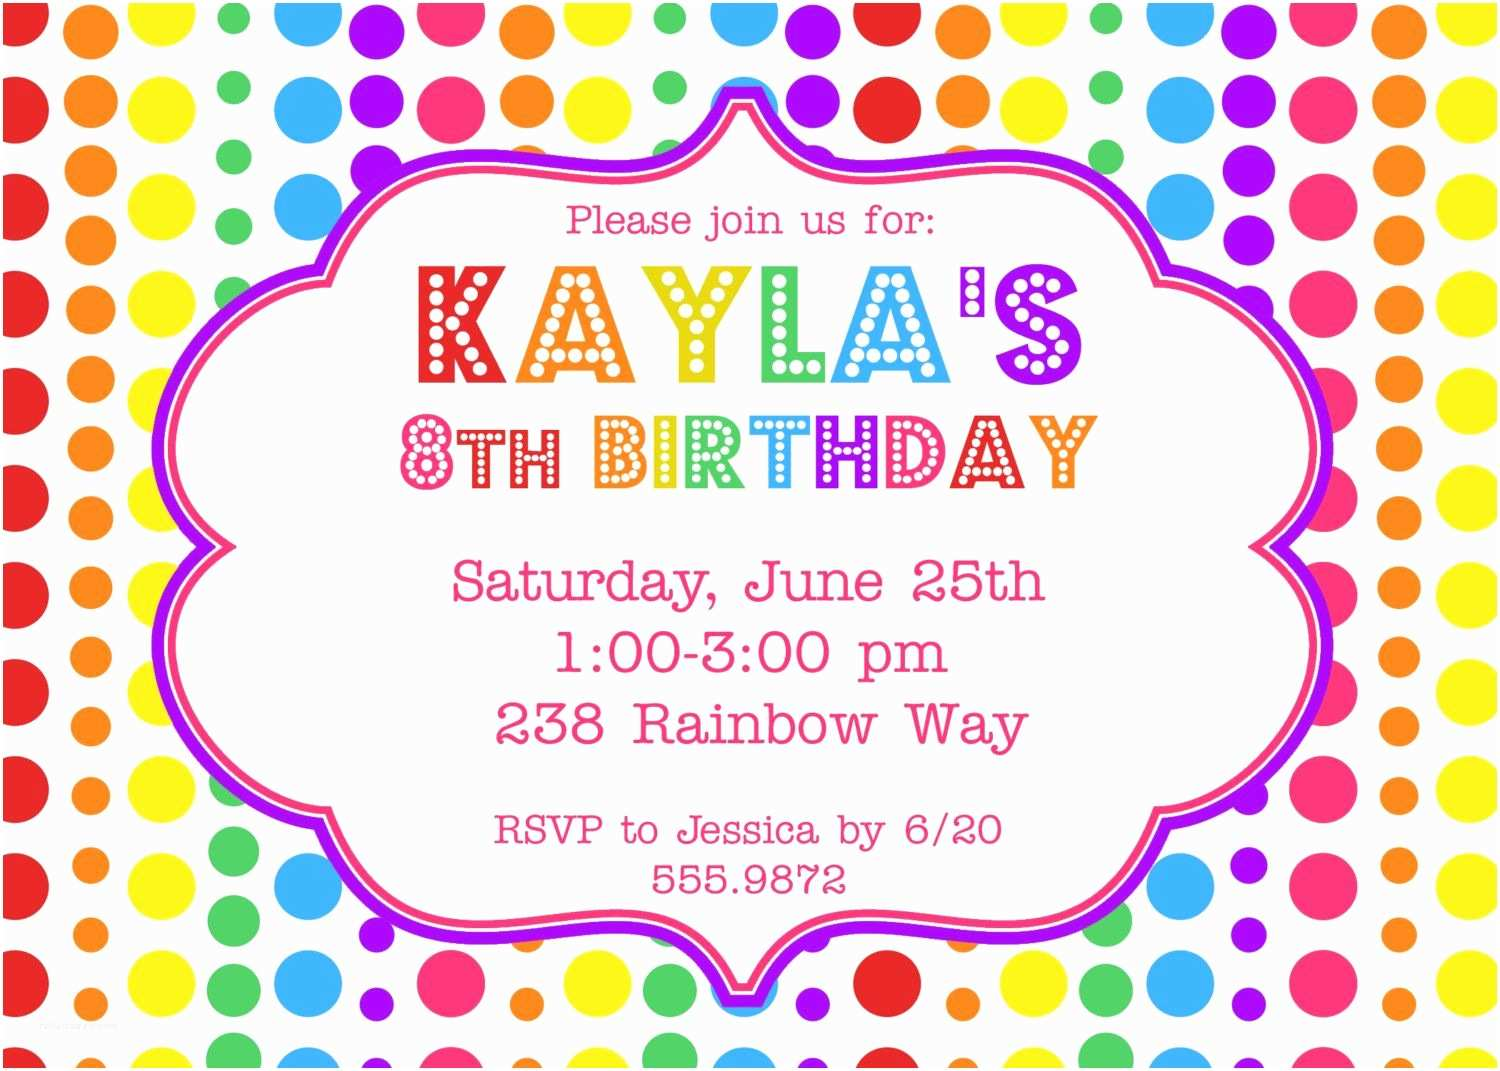 Birthday Party Invitation Ideas Rainbow Birthday Party Invitation $12 00 Via Etsy